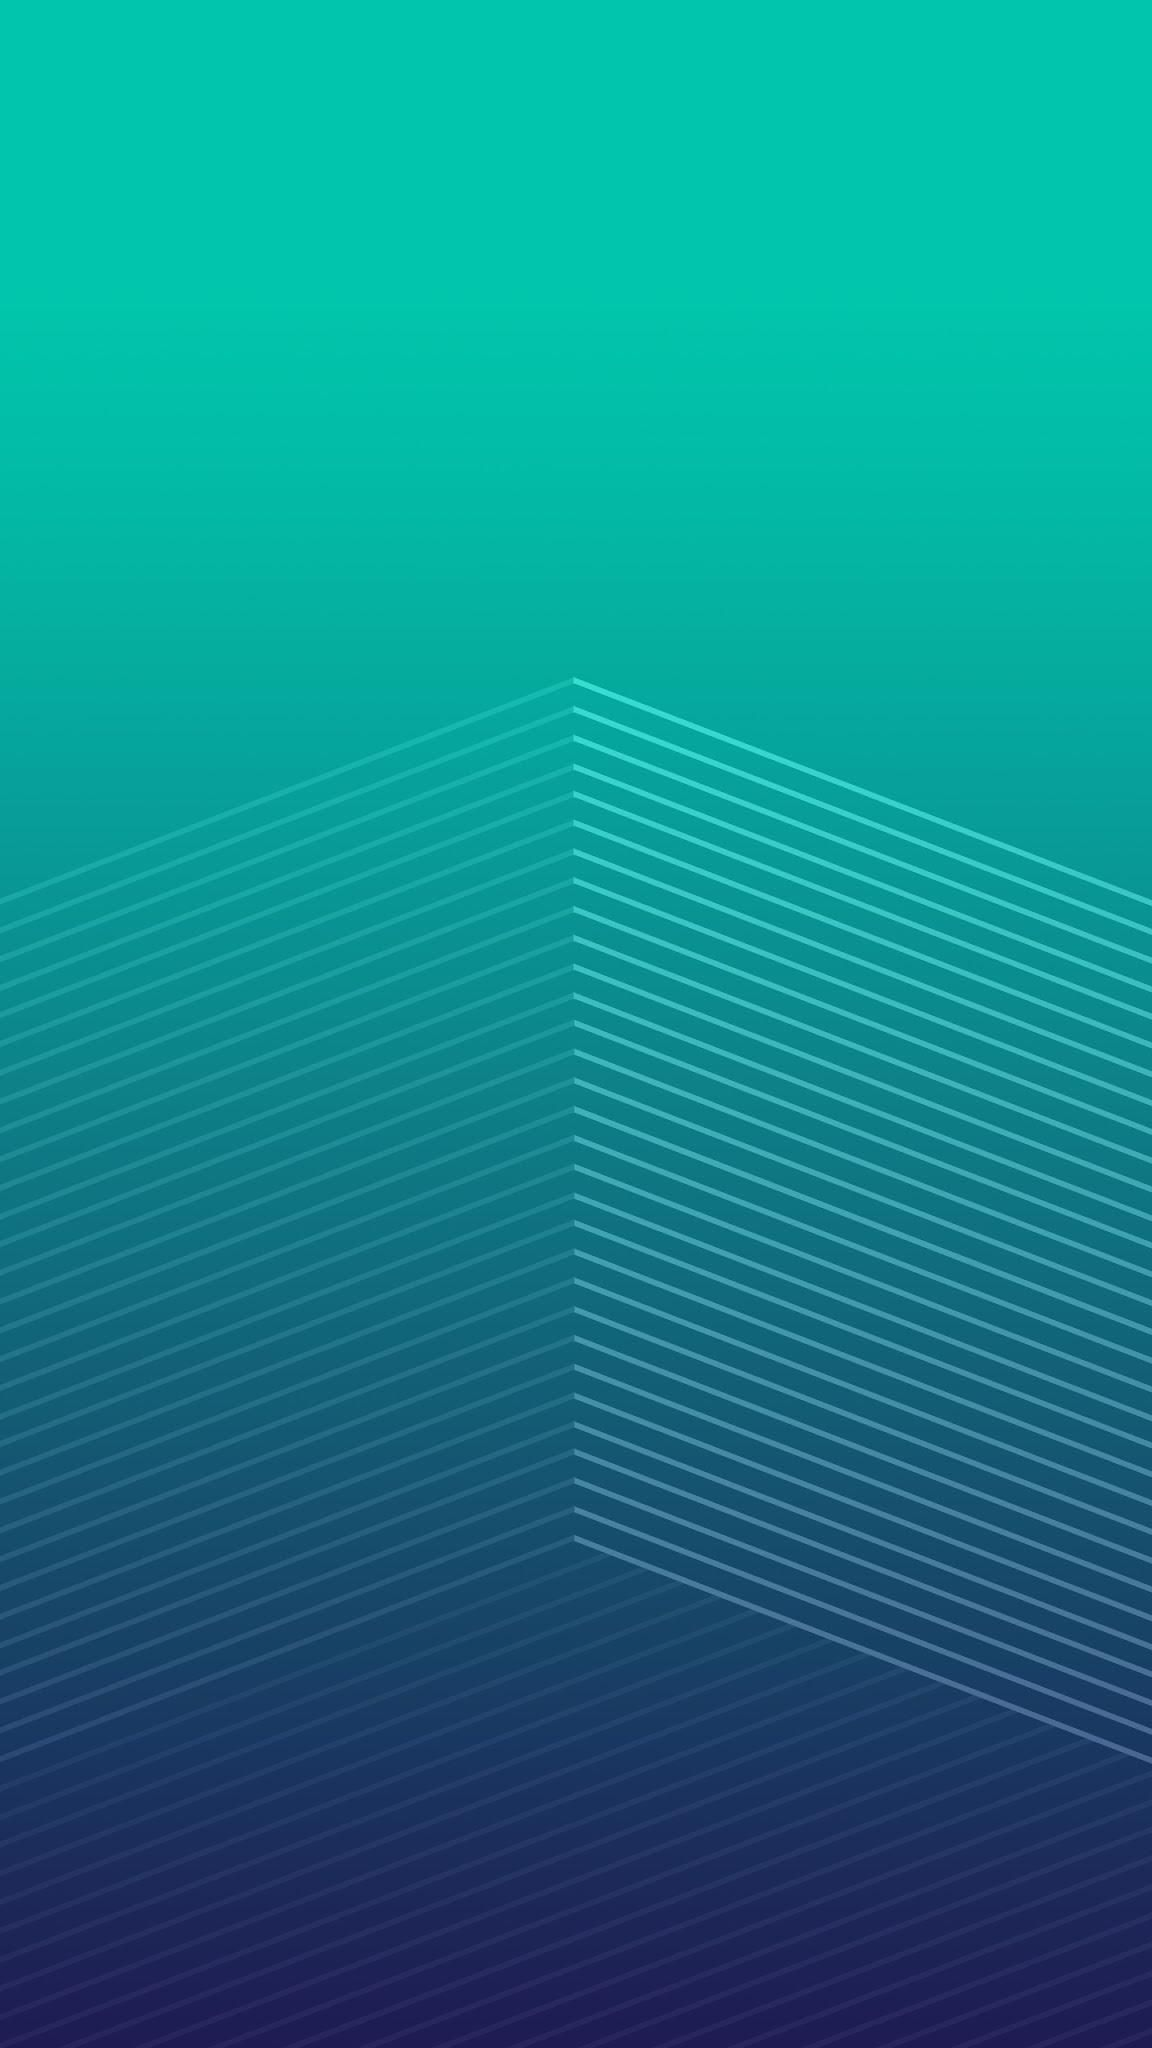 Minimal abstract wallpaper for your phone Minimalist wallpaper 1152x2048